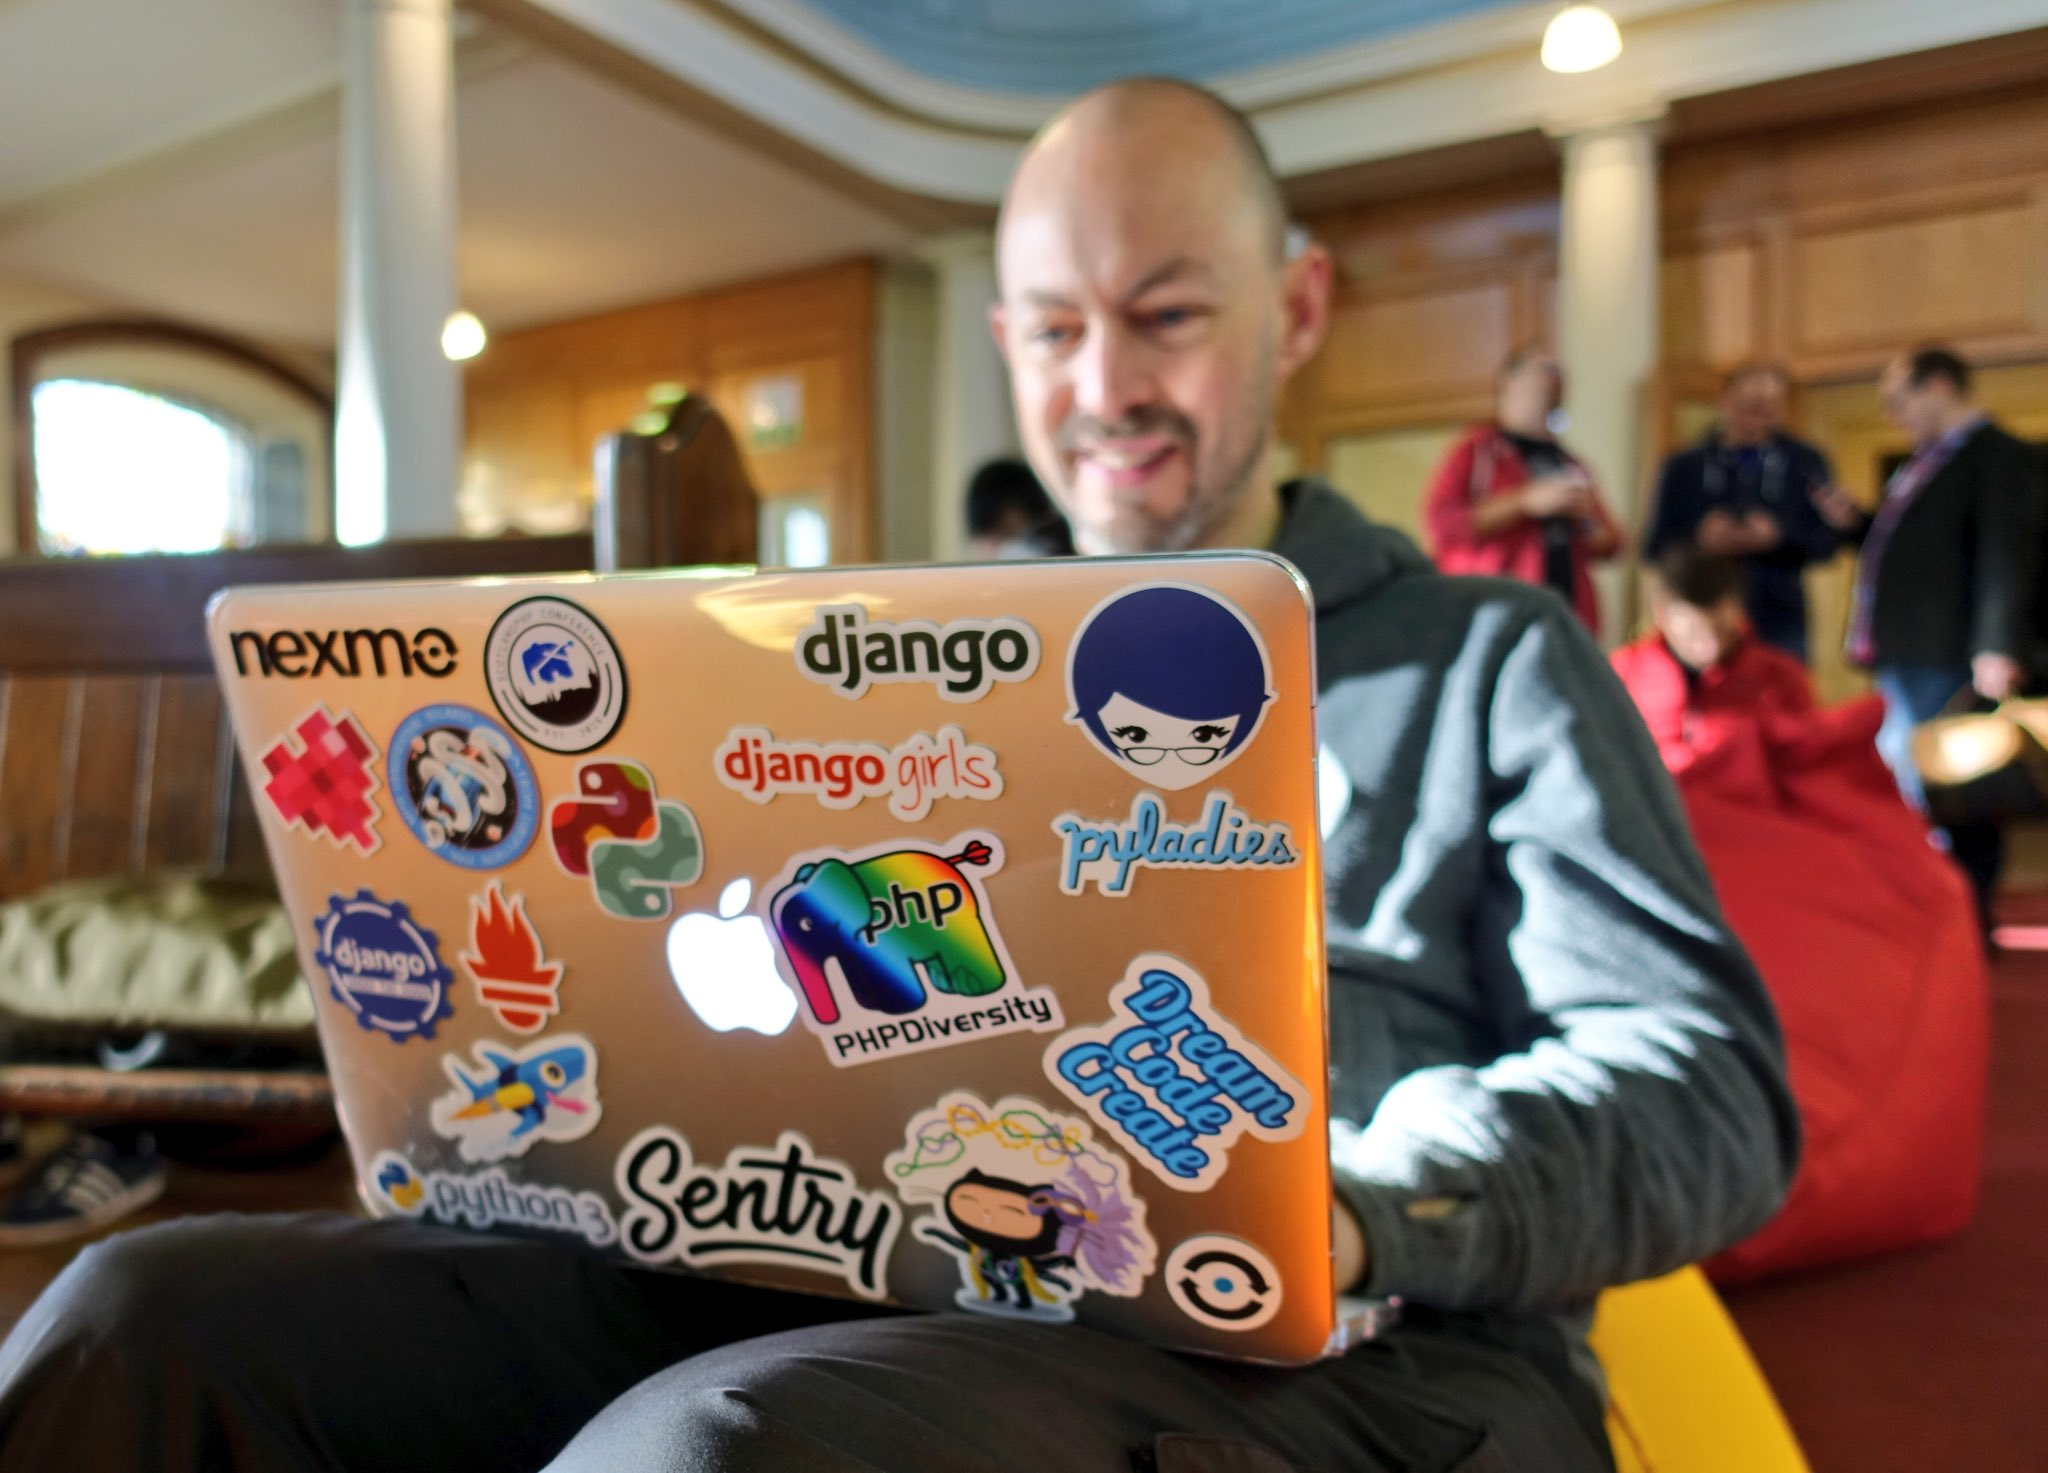 No shortage of stickers  #ota16 https://t.co/C8Z0iaKqRT